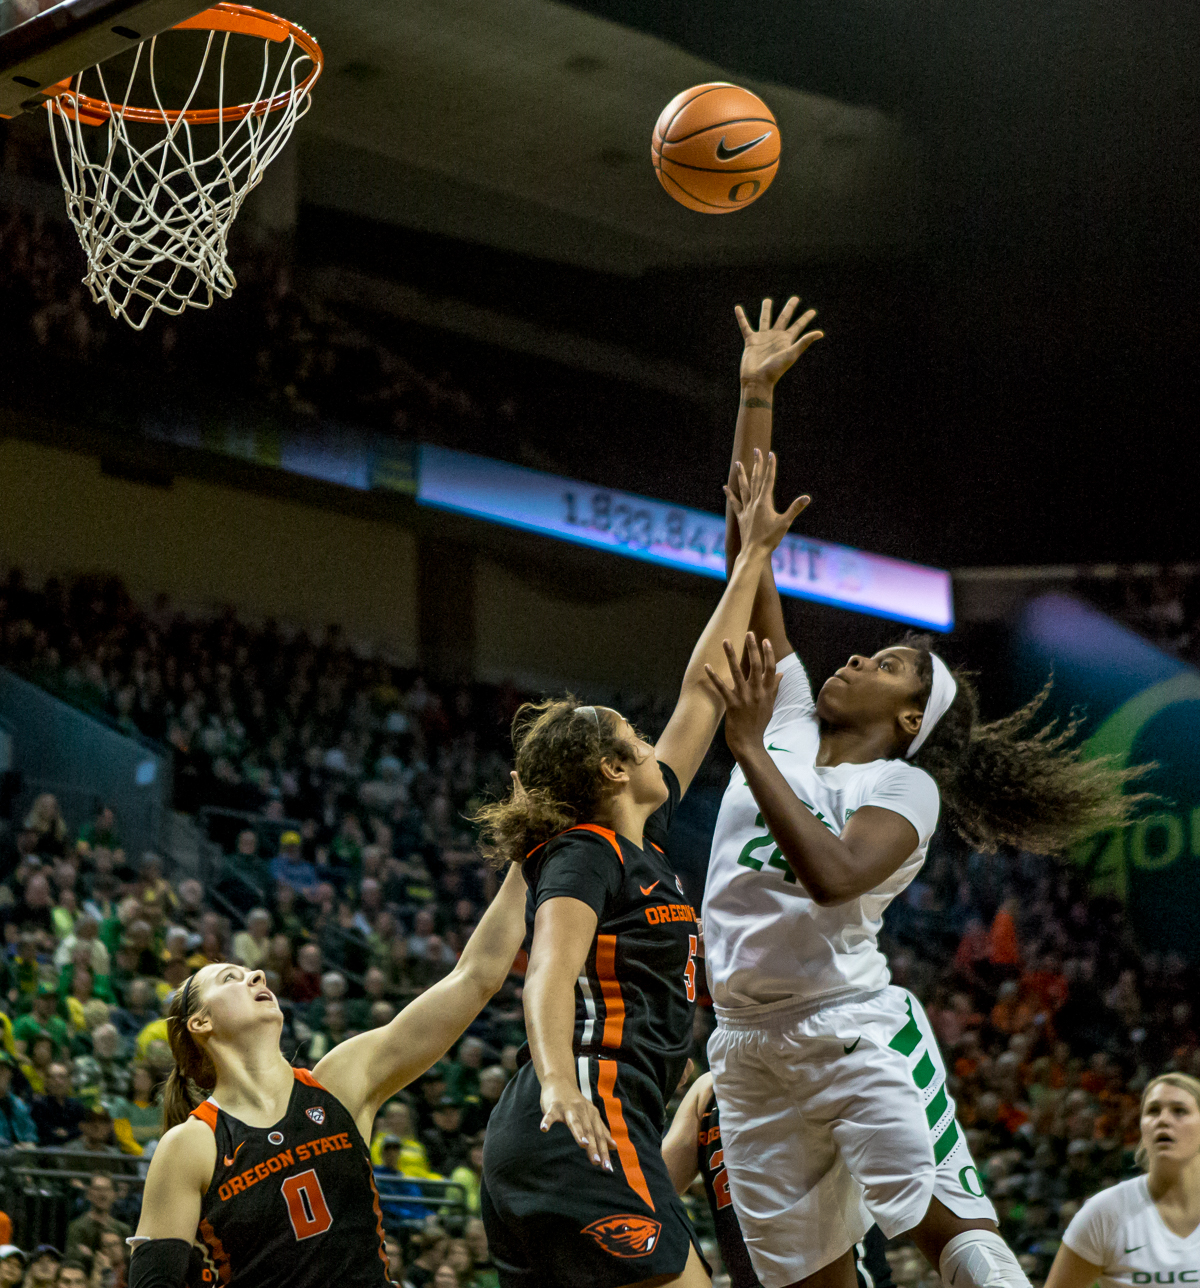 Oregon forward Ruthy Hebard (#24) leaps to rebound an Oregon State shot. The Oregon Ducks defeated the Oregon State Beavers 75-63 on Sunday afternoon in front of a crowd of 7,249 at Matthew Knight Arena. The Ducks and Beavers split the two game Civil War with the Beavers defeating the Ducks on Friday night in Corvallis. The Ducks had four players in double digits: Satou Sabally with 21 points, Maite Cazorla with 16, Sabrina Ionescu with 15, and Mallory McGwire with 14. The Ducks shot 48.4% from the floor compared to the Beavers 37.3%. The Ducks are now 7-1 in conference play. Photo by Ben Lonergan, Oregon News Lab